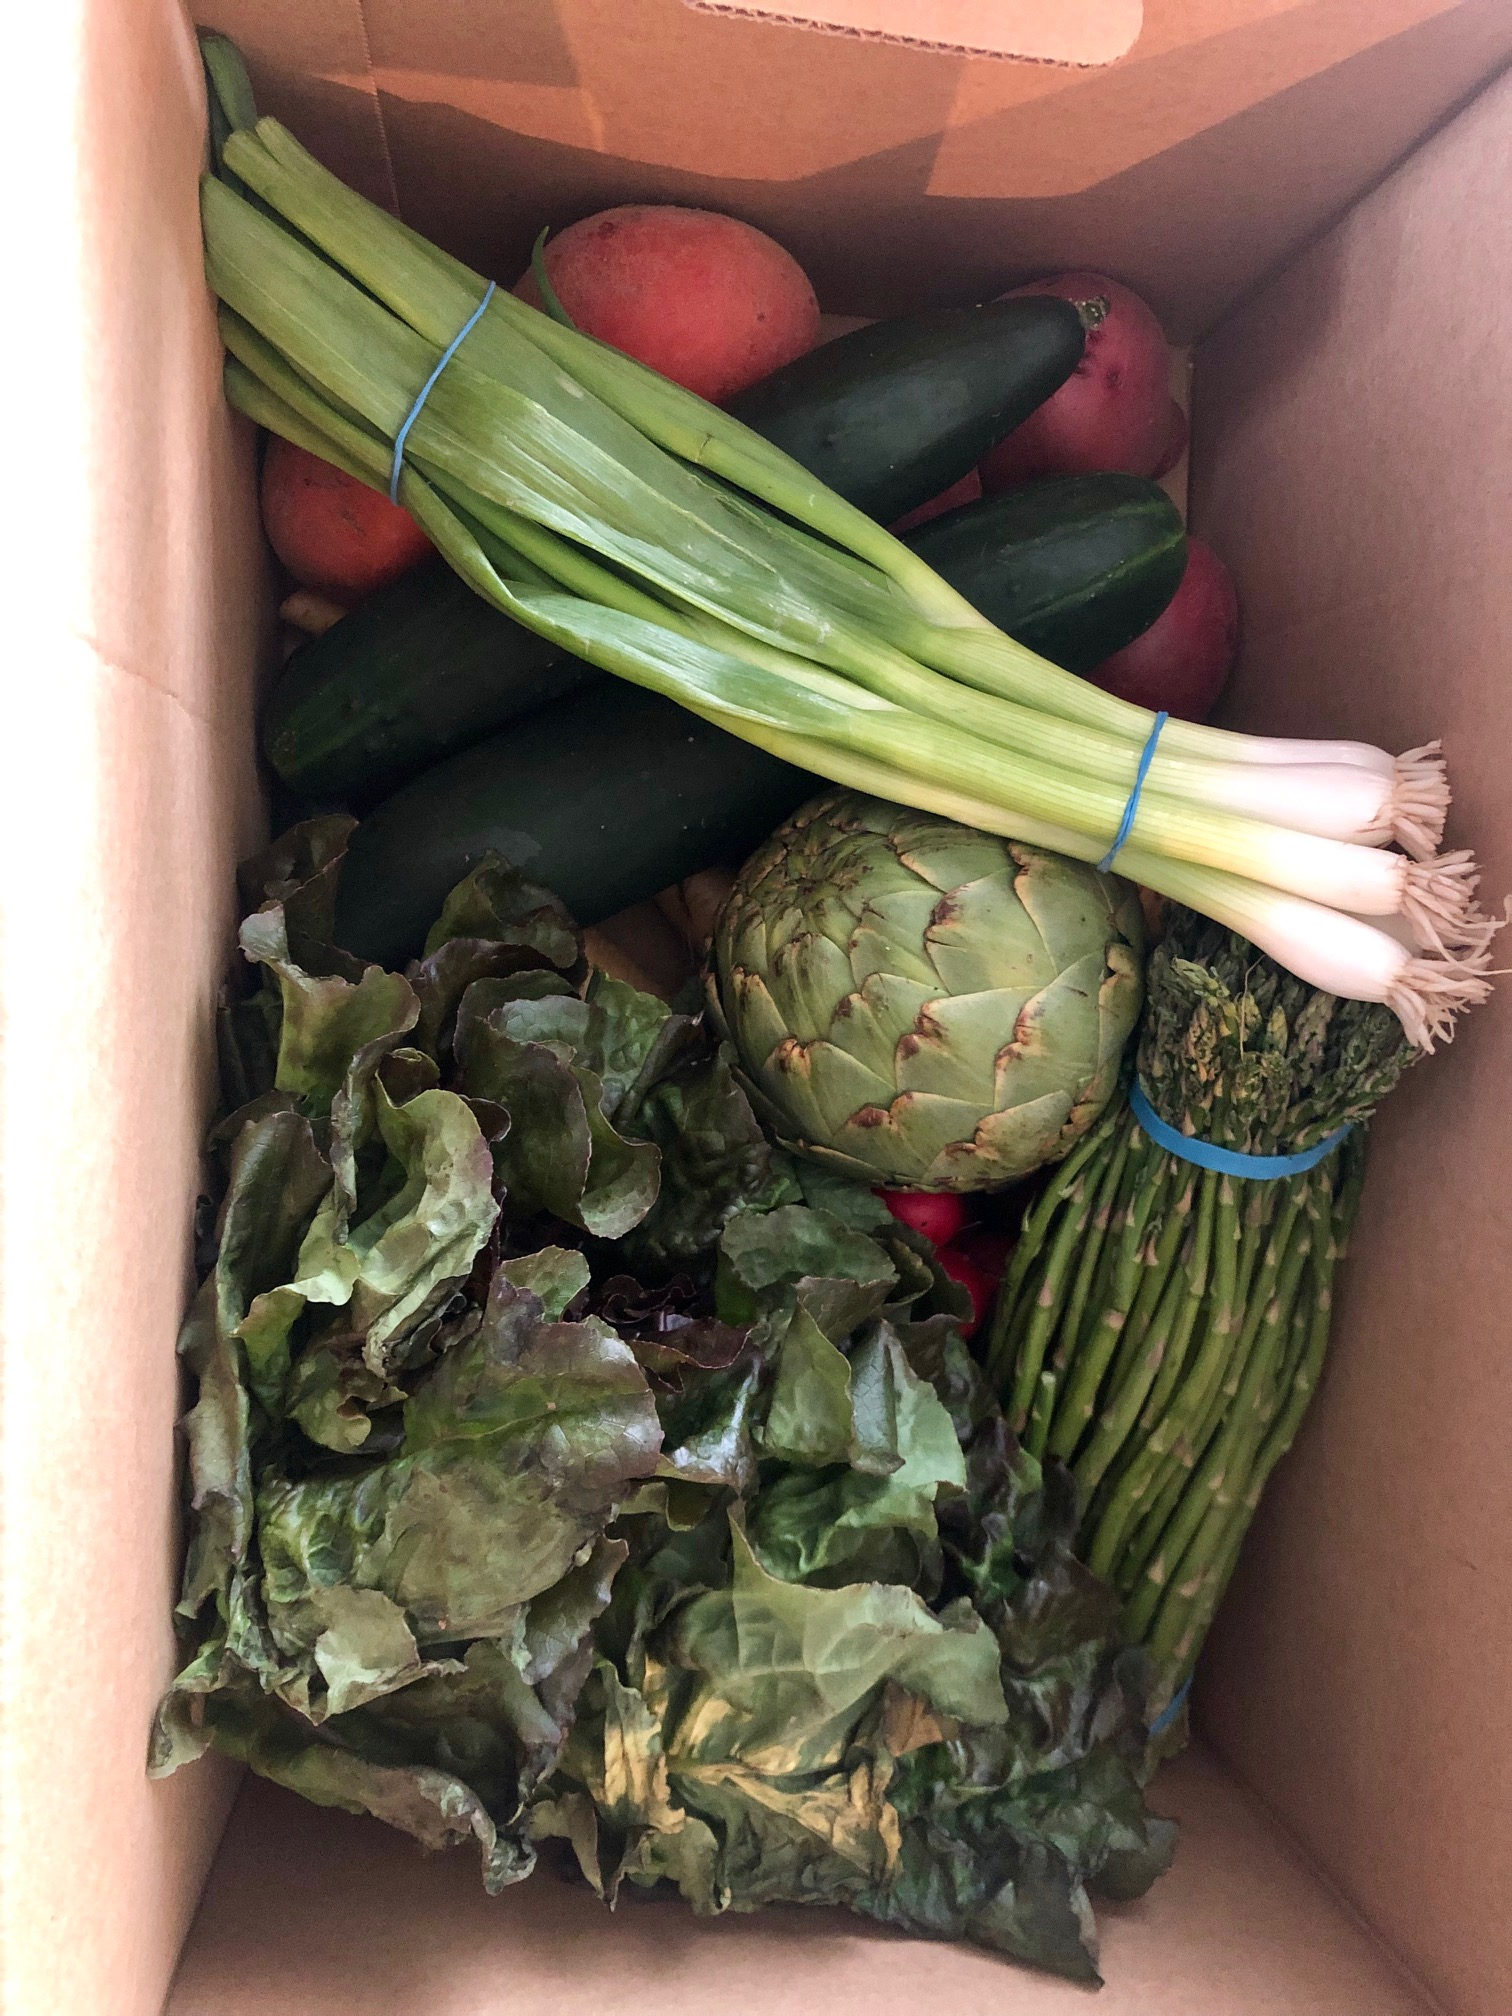 Produce delivery from Imperfect Produce.